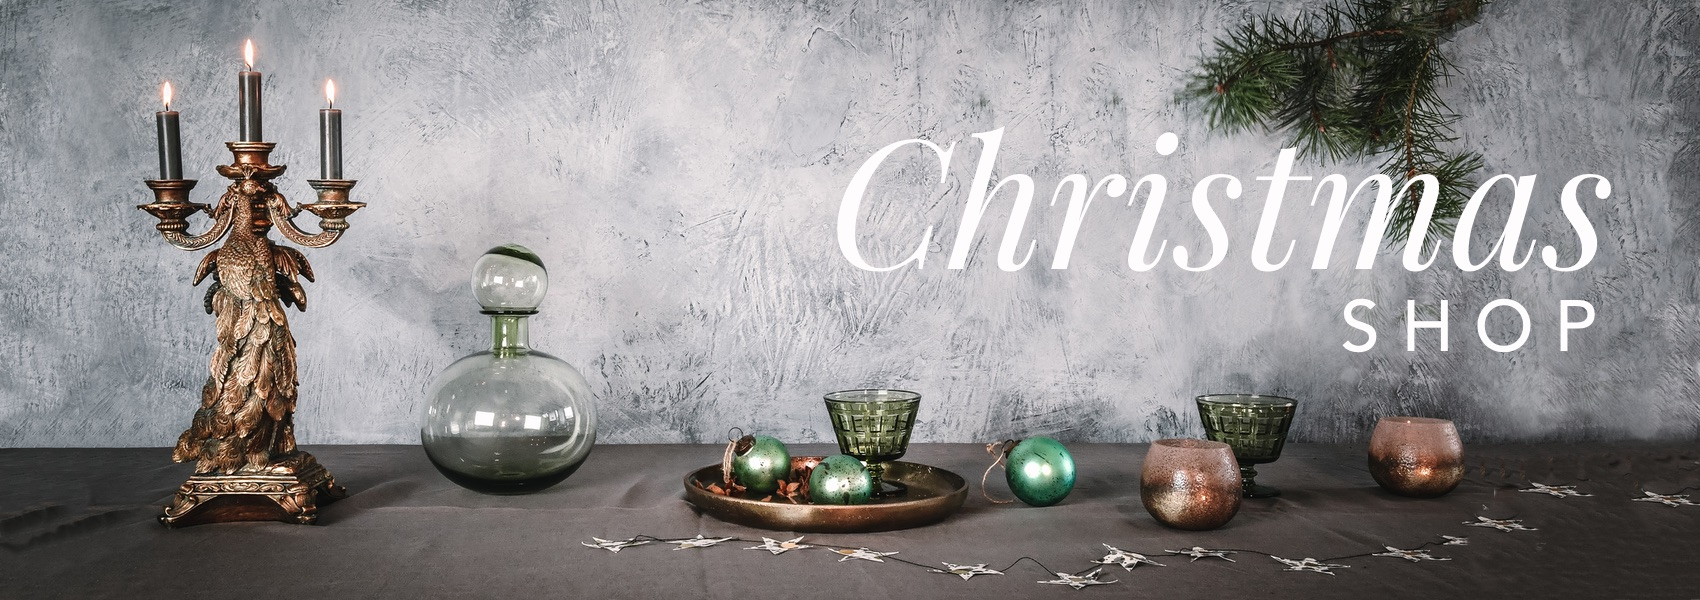 Curious Egg Christmas Shop 2019.  Selection of quirky and unusual Christmas decoration items displayed on a table with a pine branch in the background.